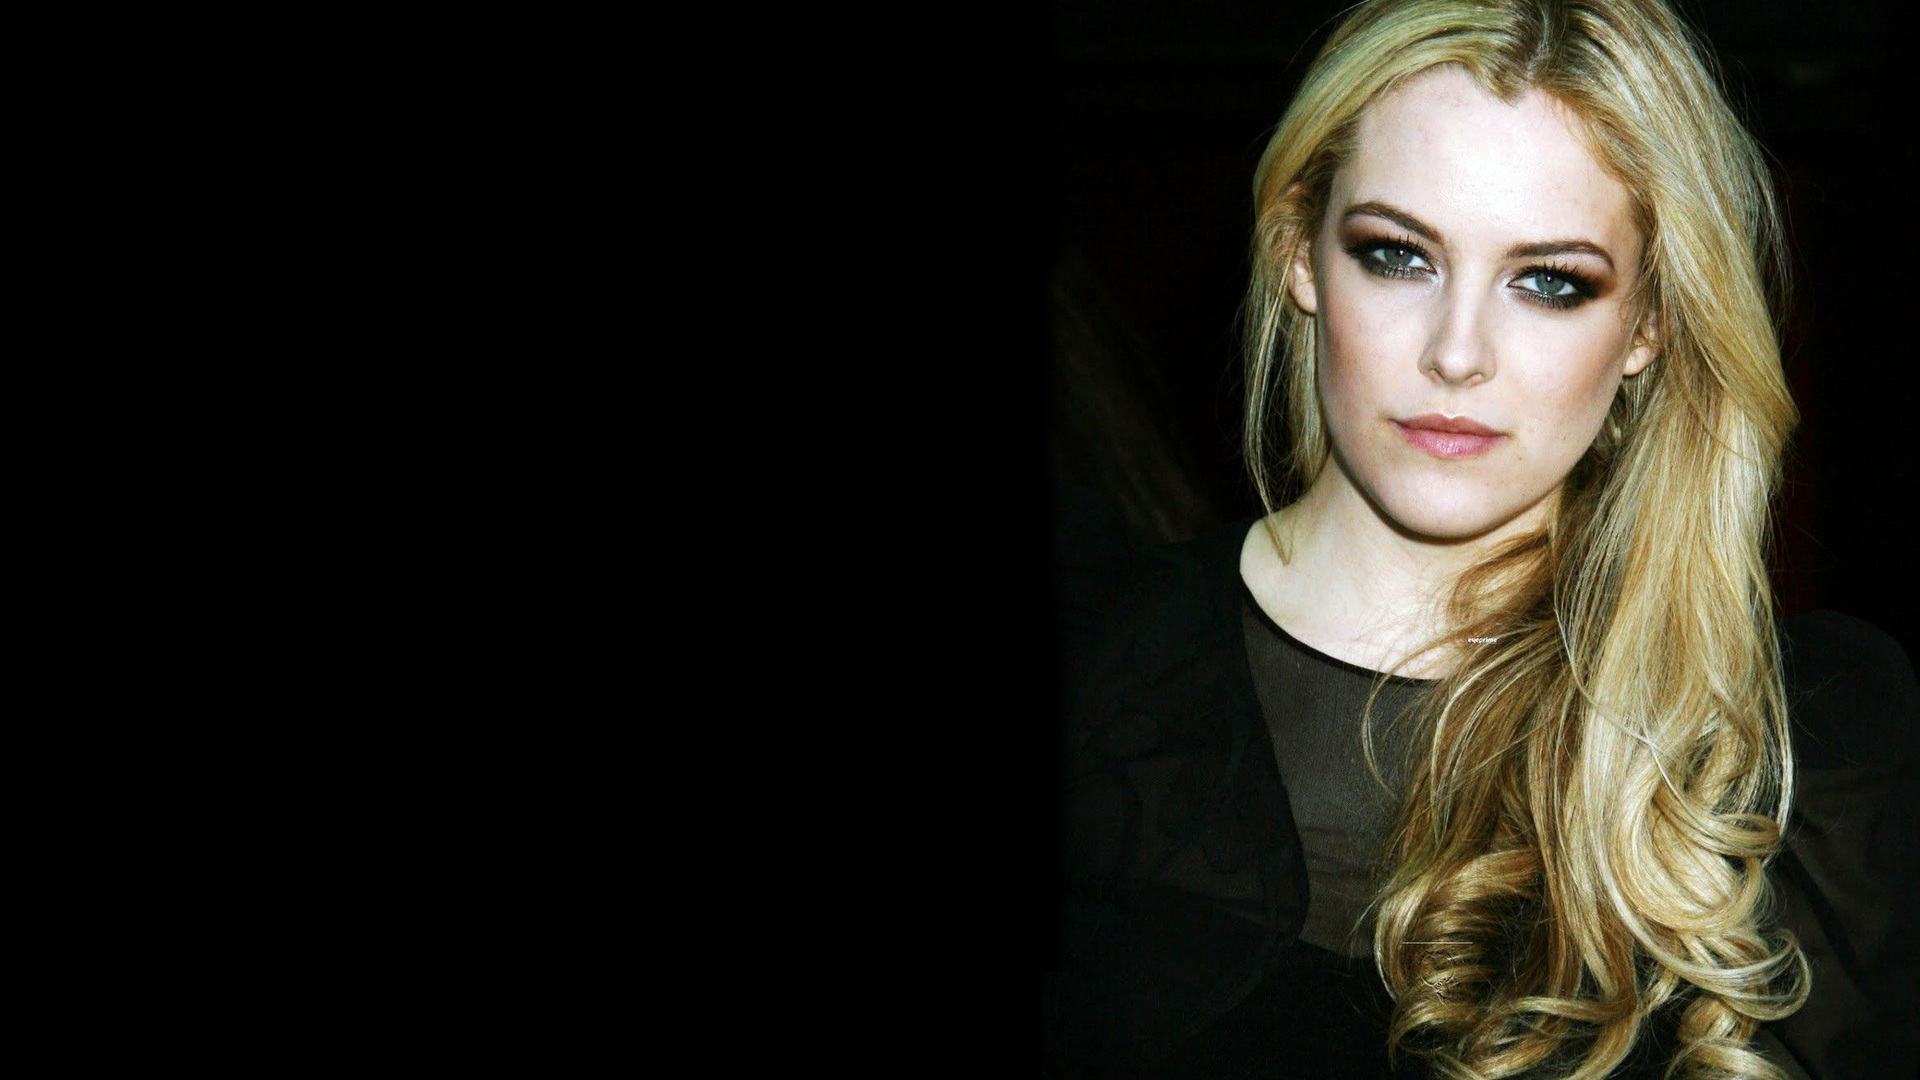 1920x1080 - Riley Keough Wallpapers 24